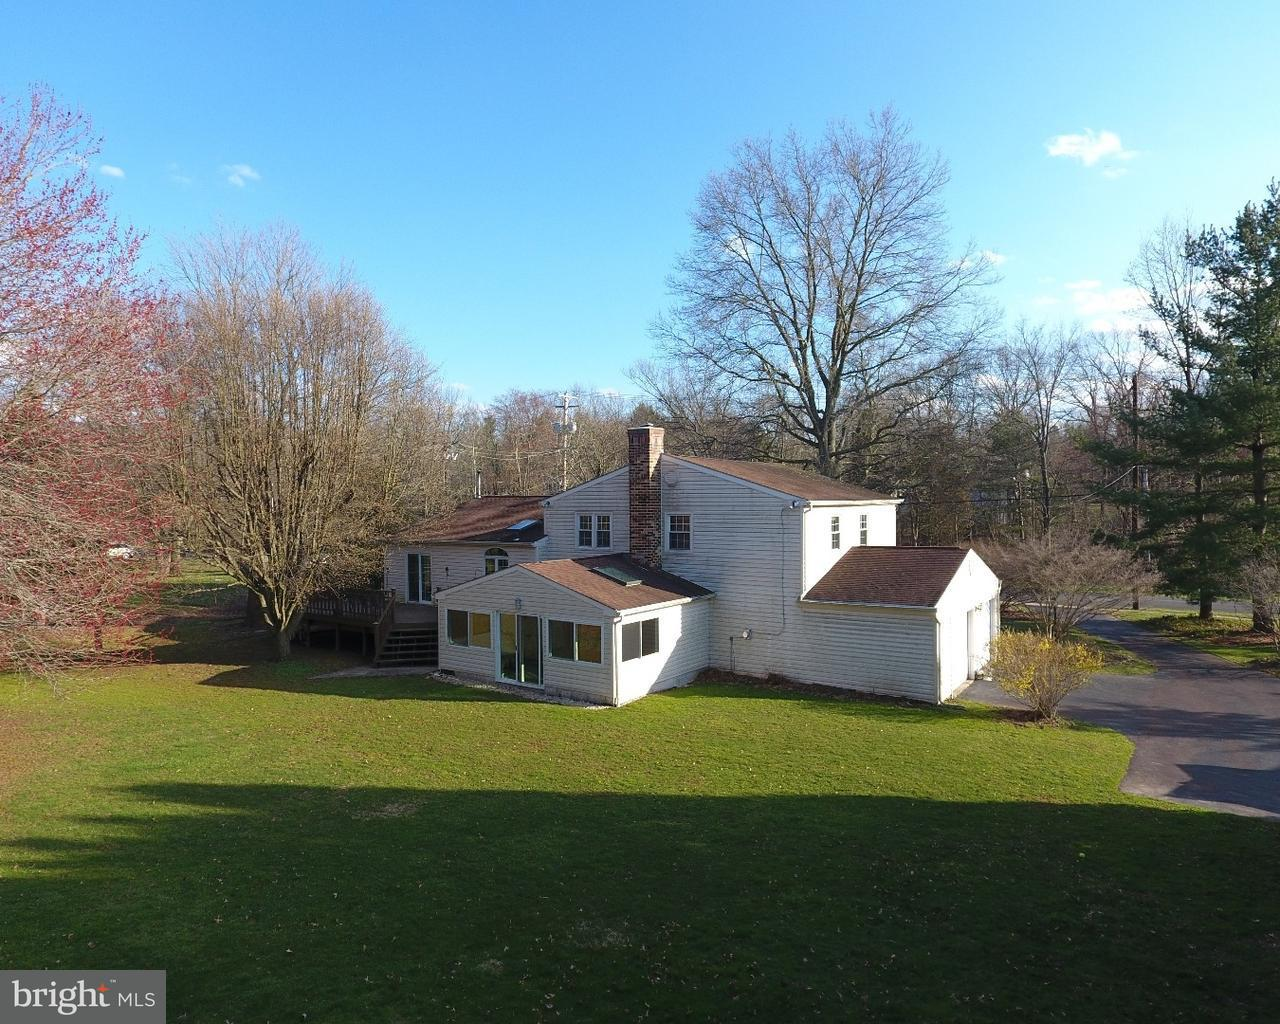 2063 KRIEBEL RD, LANSDALE - Listed at $379,000, LANSDALE